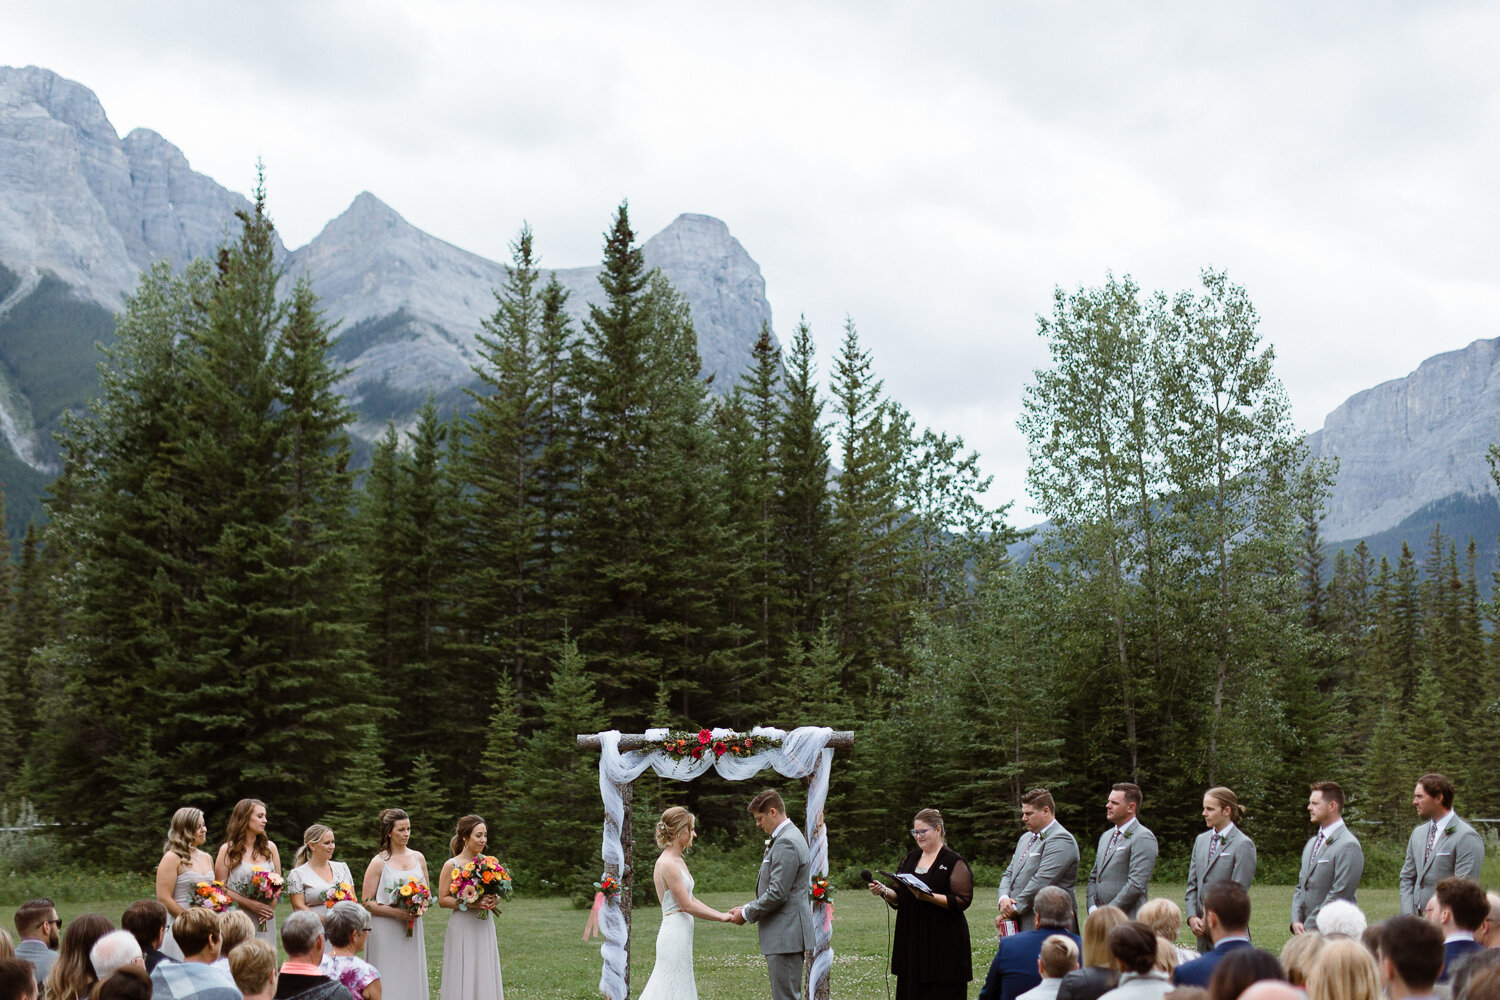 70-Canmore-Alberta-Real-Wedding-Best-Wedding-Photographers-99.JPG